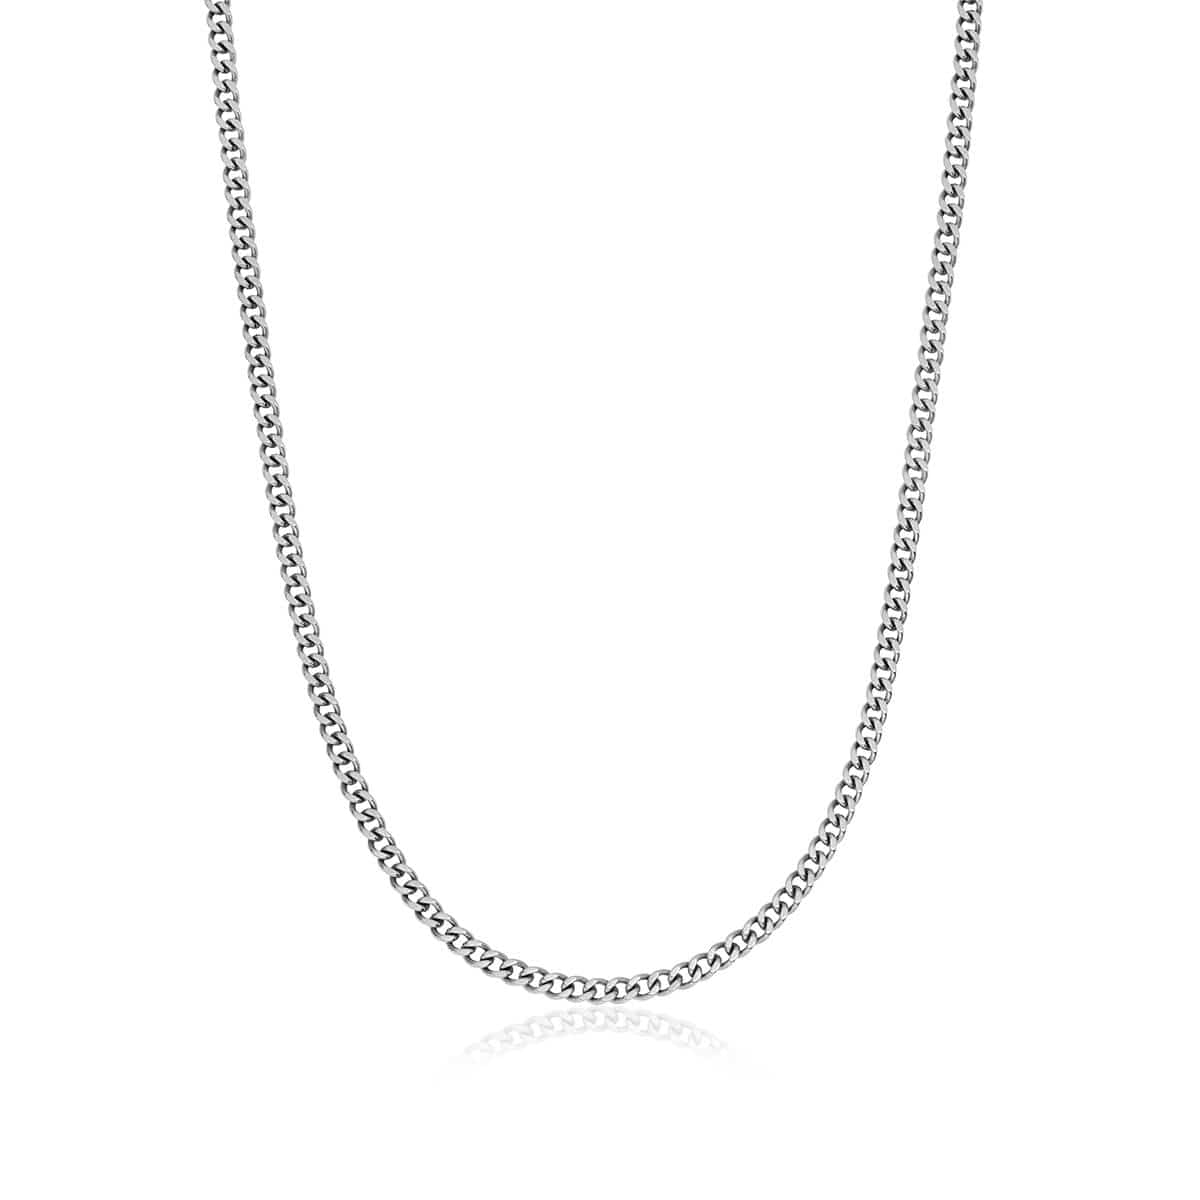 Selected Small Curb Chain Necklace (Silver)